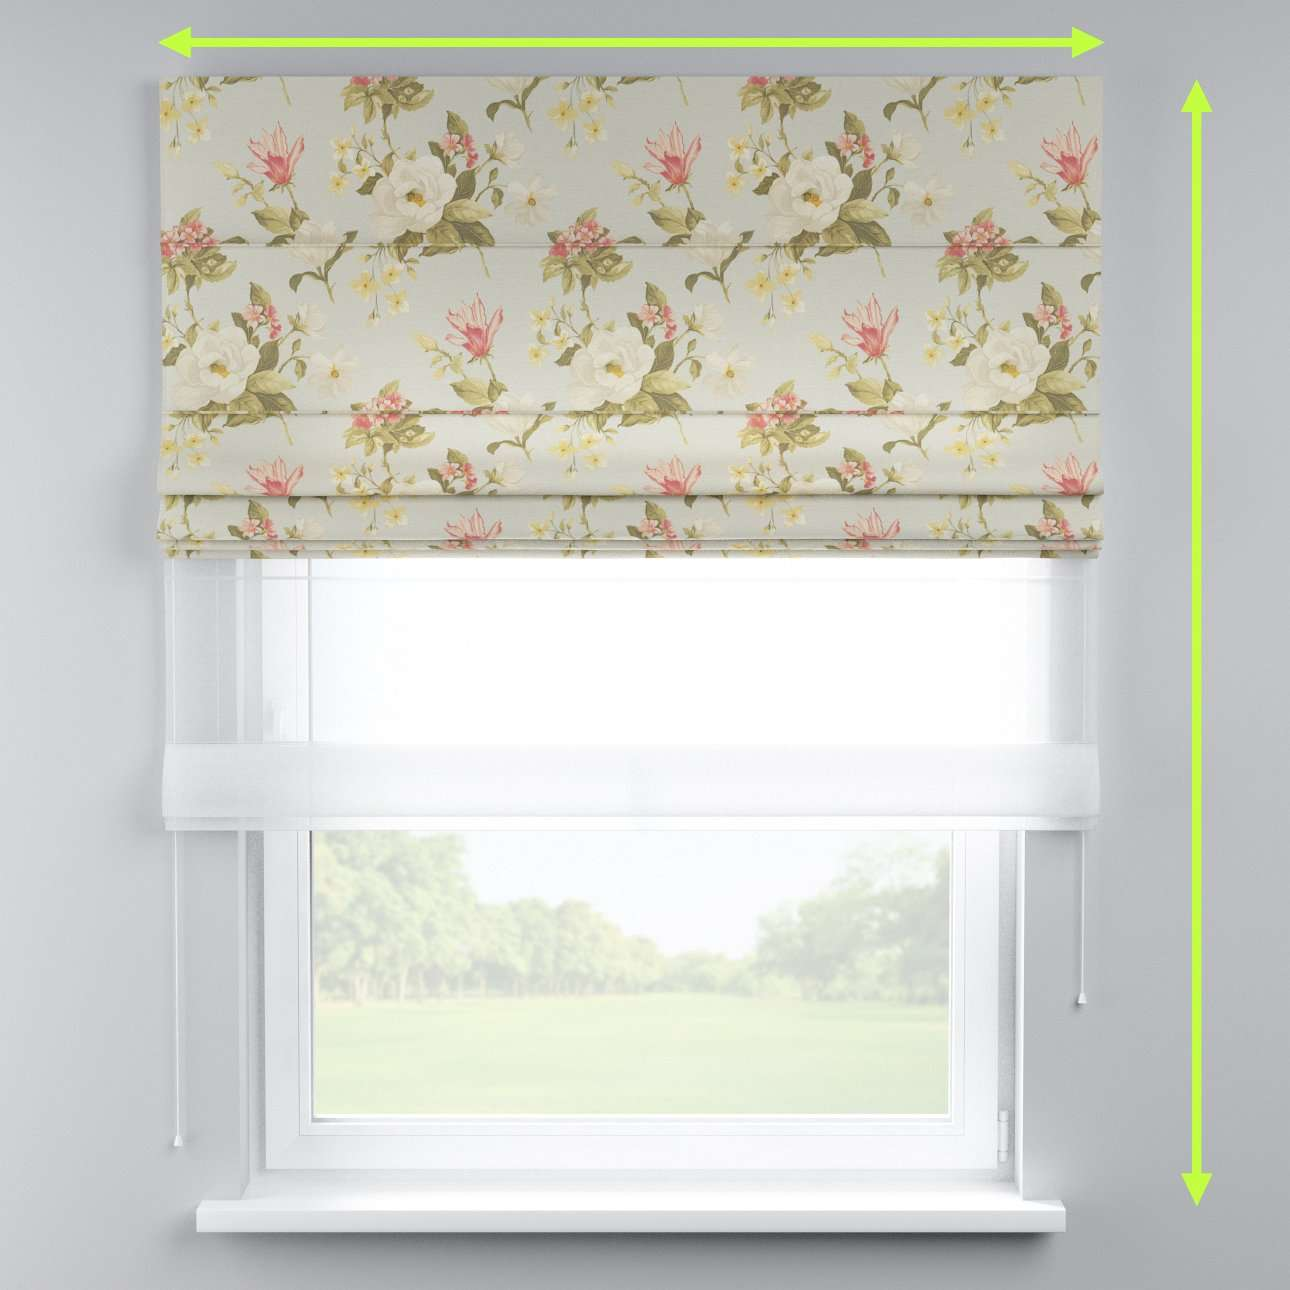 Voile and fabric roman blind (DUO II) in collection Londres, fabric: 123-65